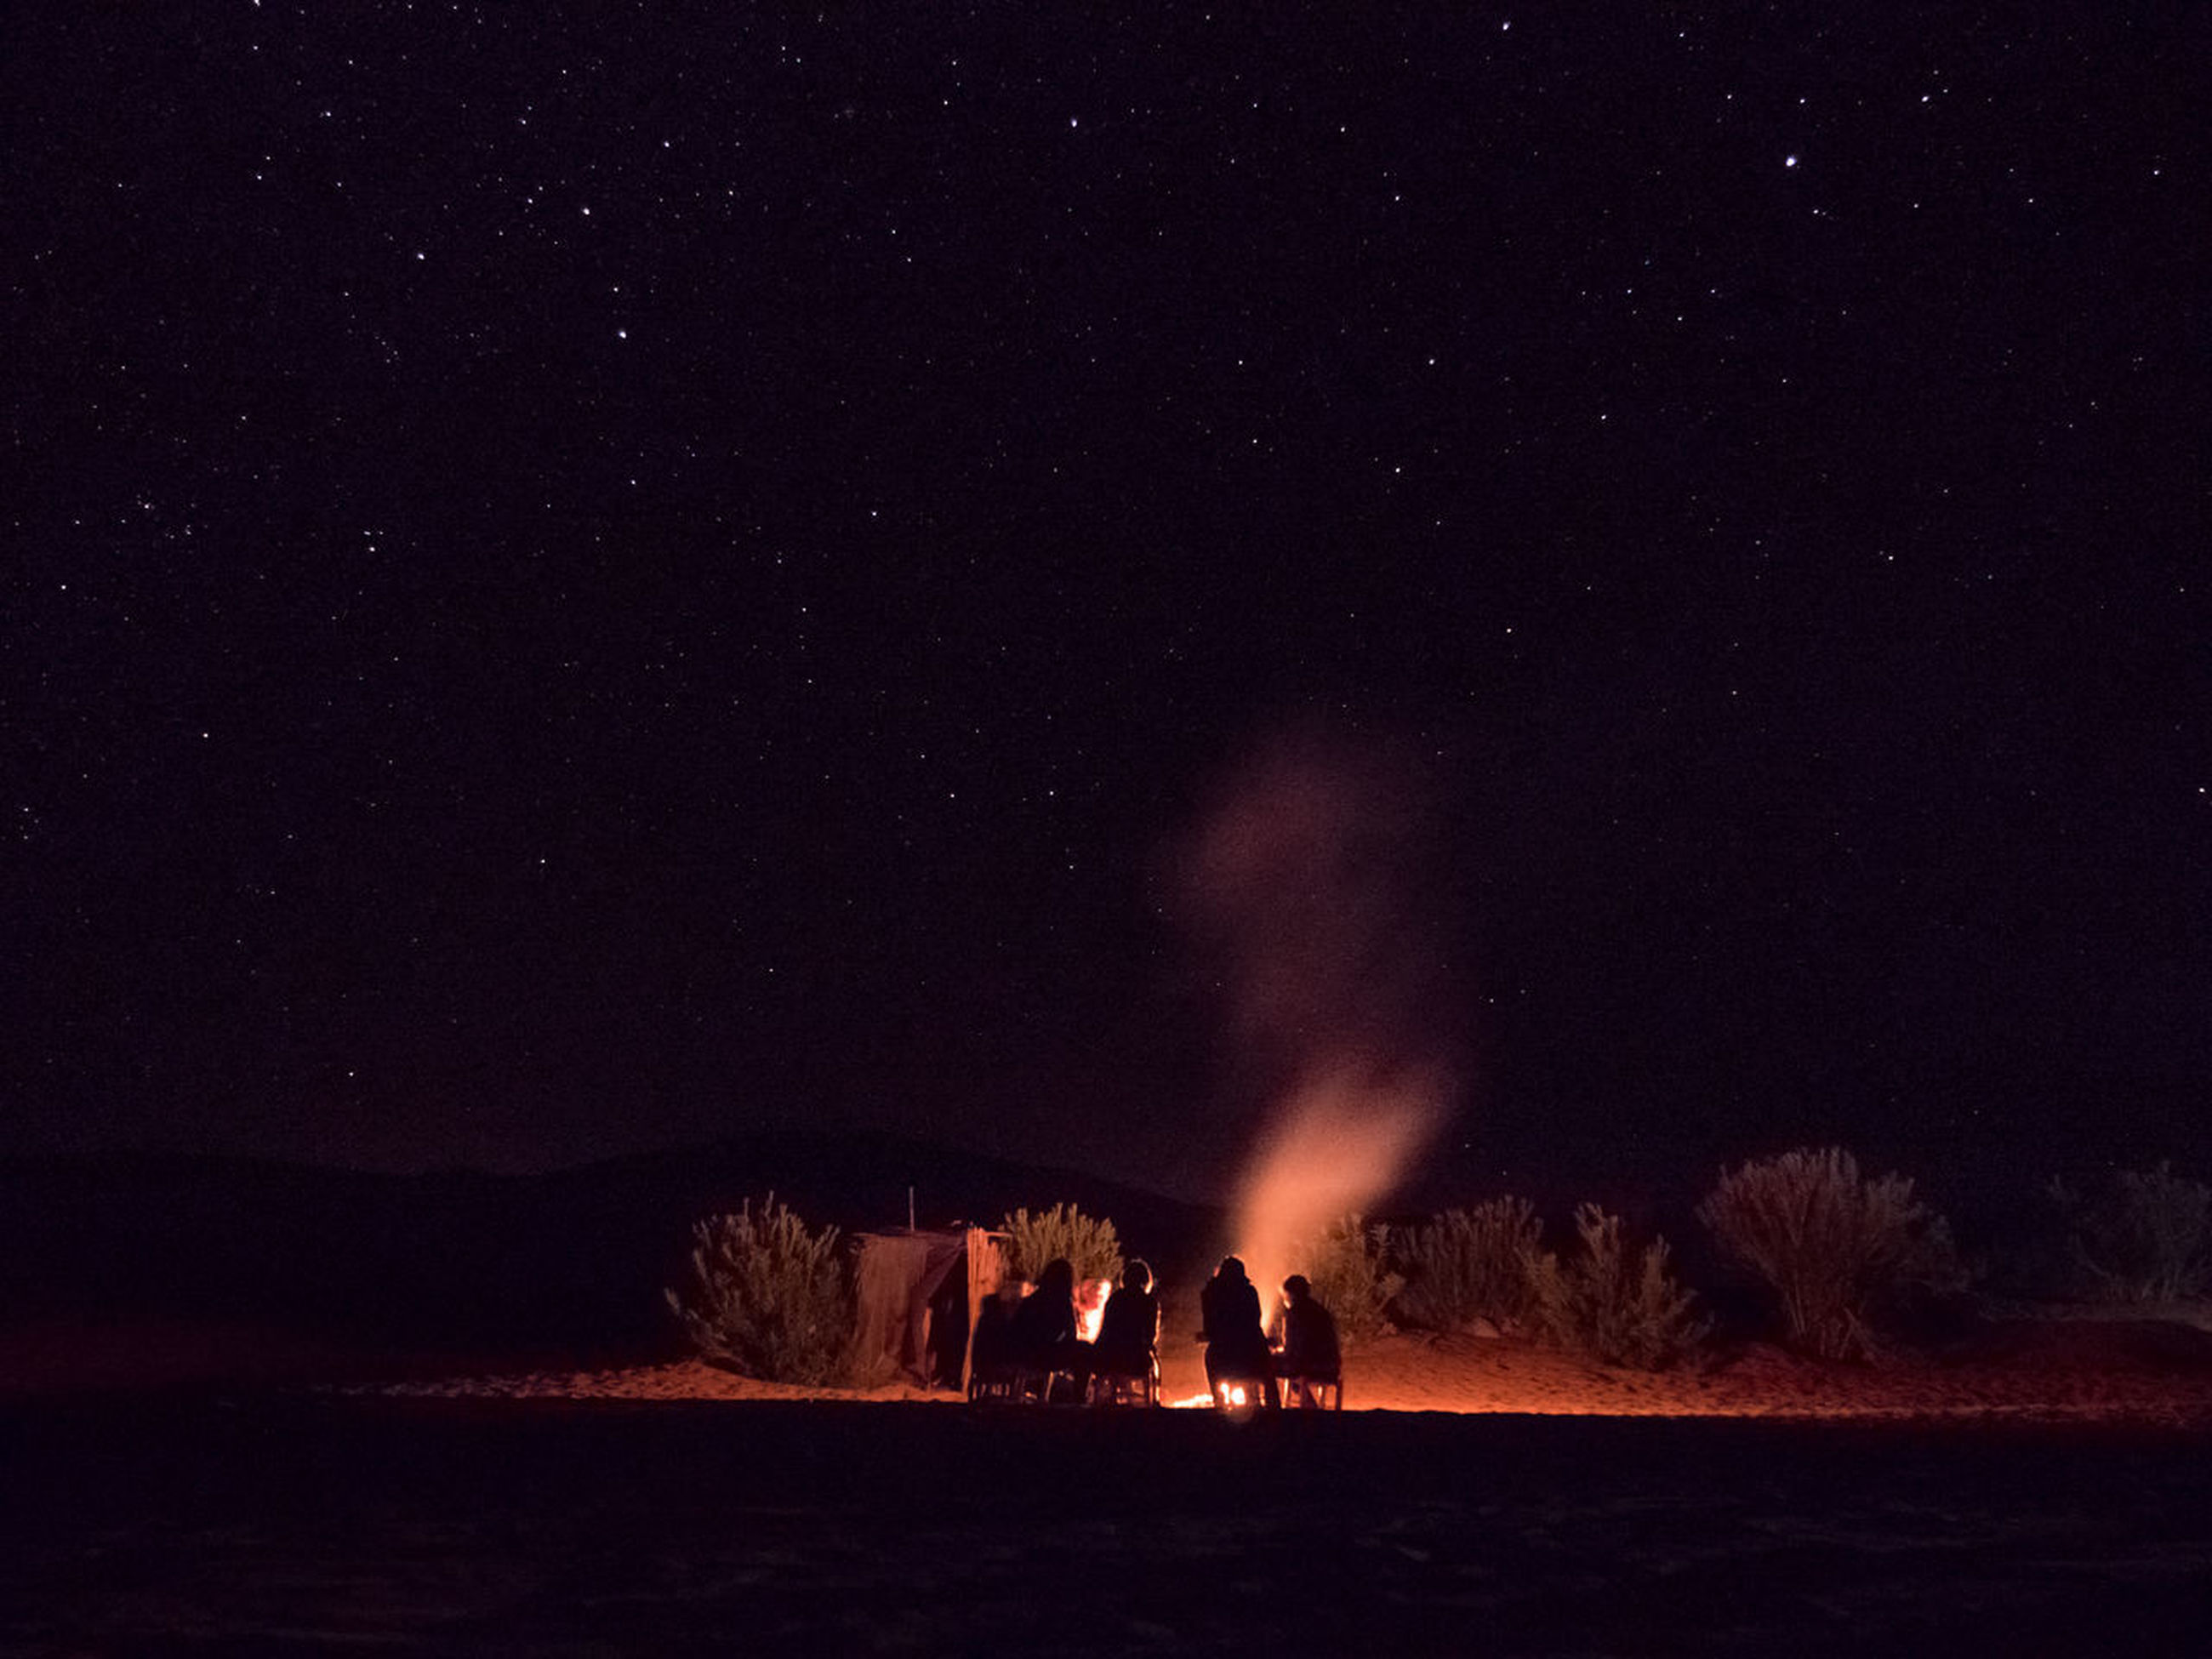 night, group of people, sky, nature, real people, land, men, medium group of people, lifestyles, silhouette, star - space, people, leisure activity, beauty in nature, illuminated, group, outdoors, water, tree, heat - temperature